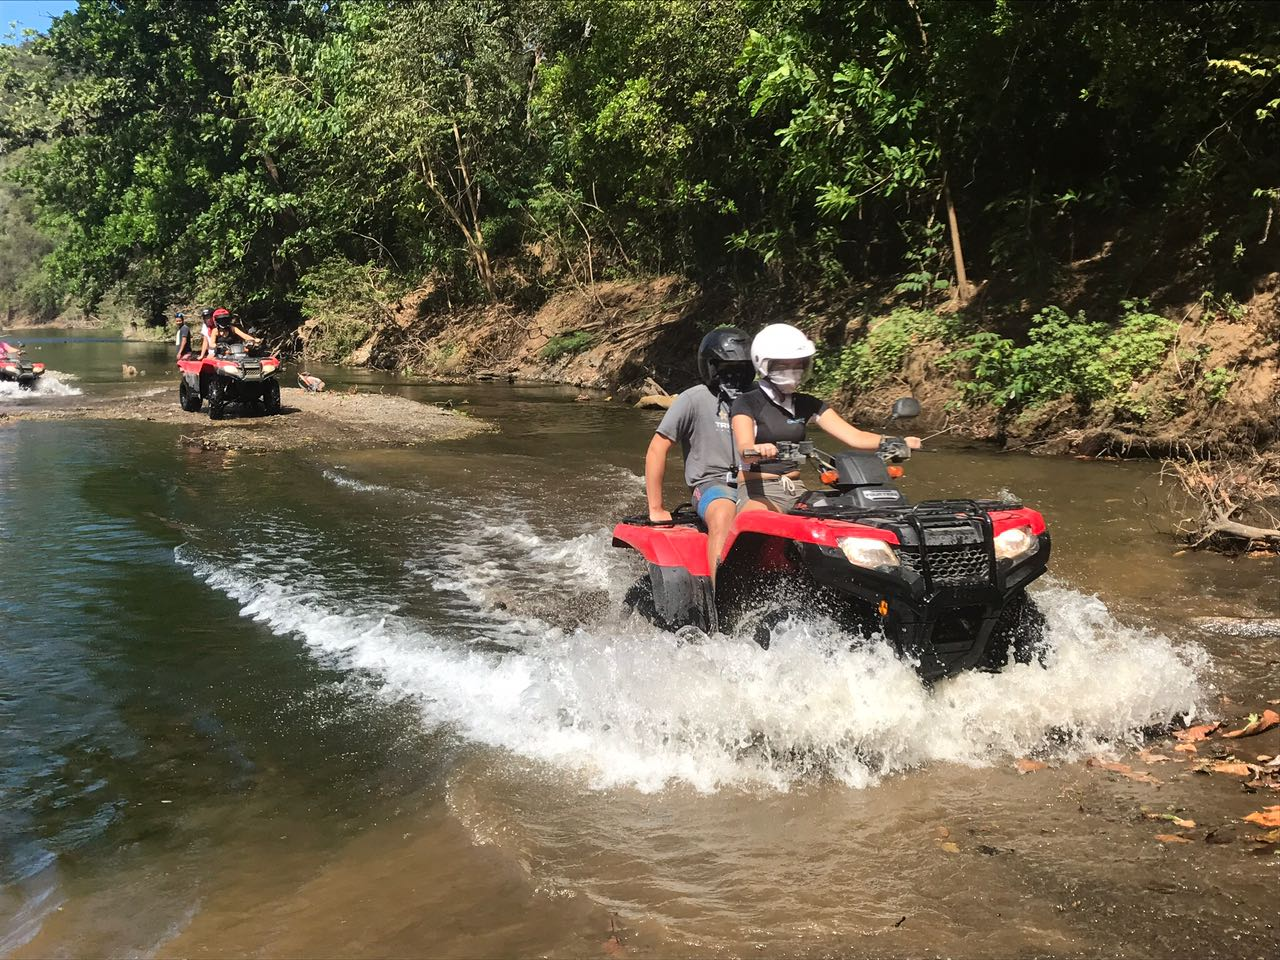 ATV / UTV Tours. - Take an ATV / UTV tour. Tours are the best way to see the real Guanacaste countryside. We have several tour packages, including an Adventure Tour and a Coffee Lovers Tour; or you can build your own with the help of our professional tour guide service.